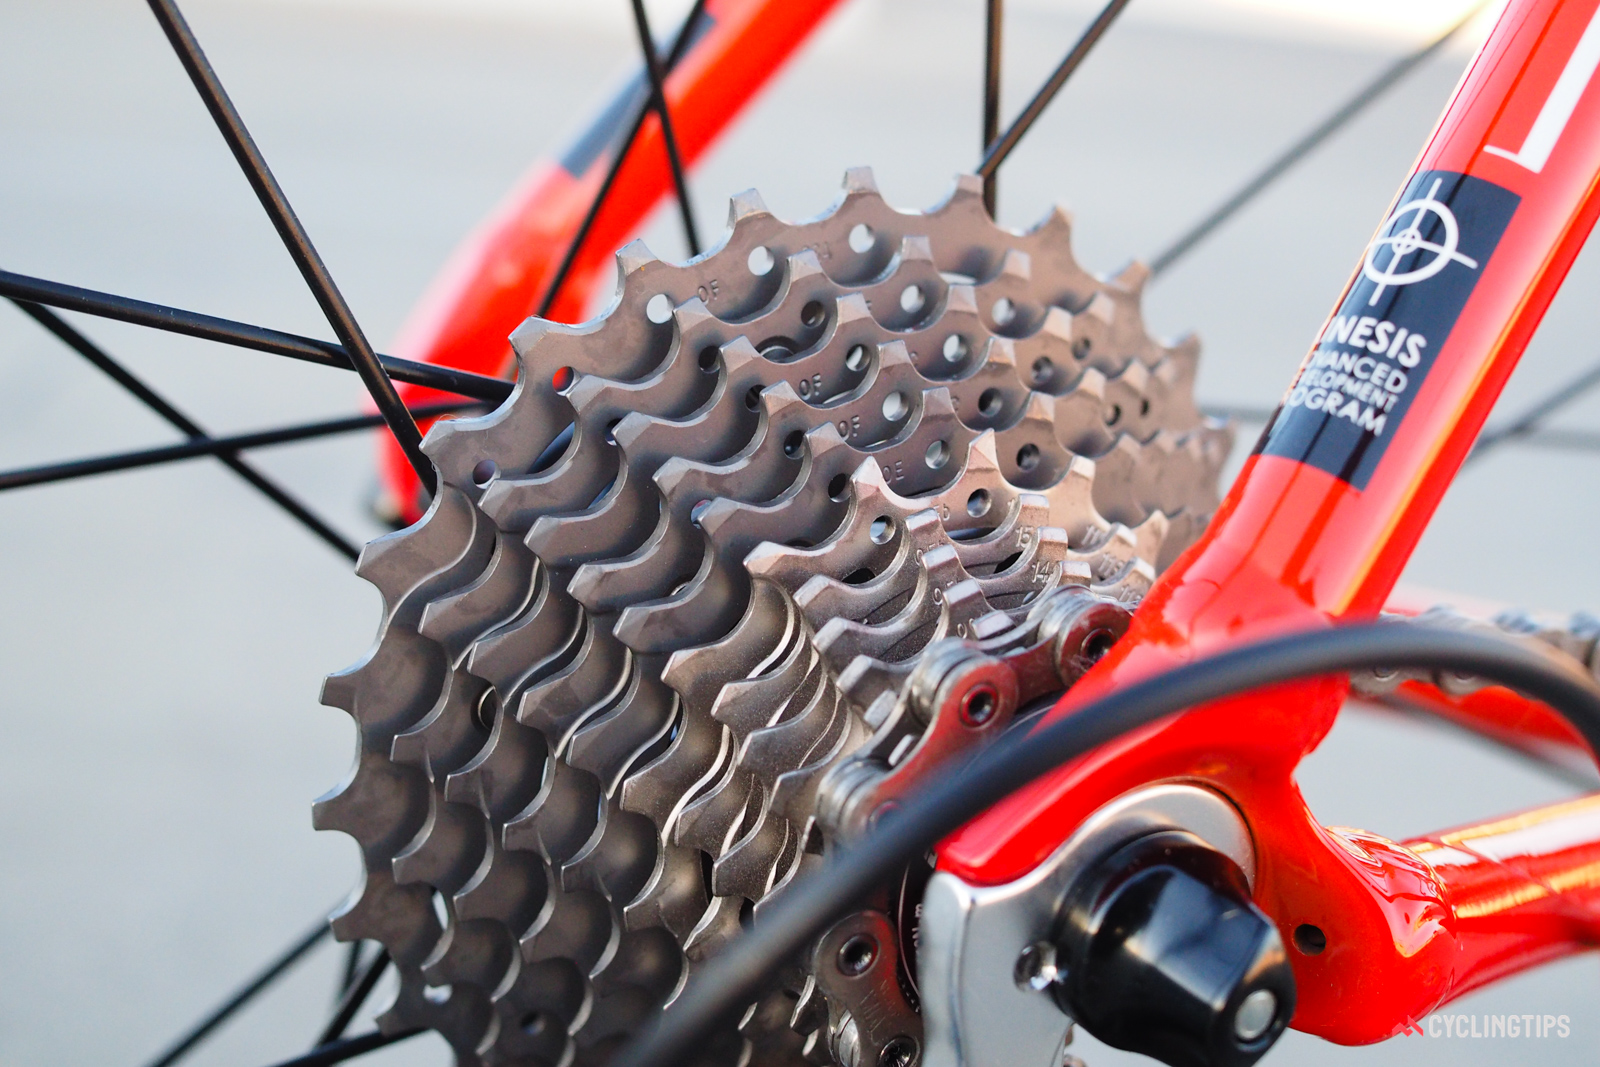 As before, the refreshed Dura-Ace 9100 cassette features a mix of steel and titanium cogs to help save weight. Tooth profiles have supposedly been revised yet again for even smoother shifting, although any improvement over previous editions is essentially unnoticeable.